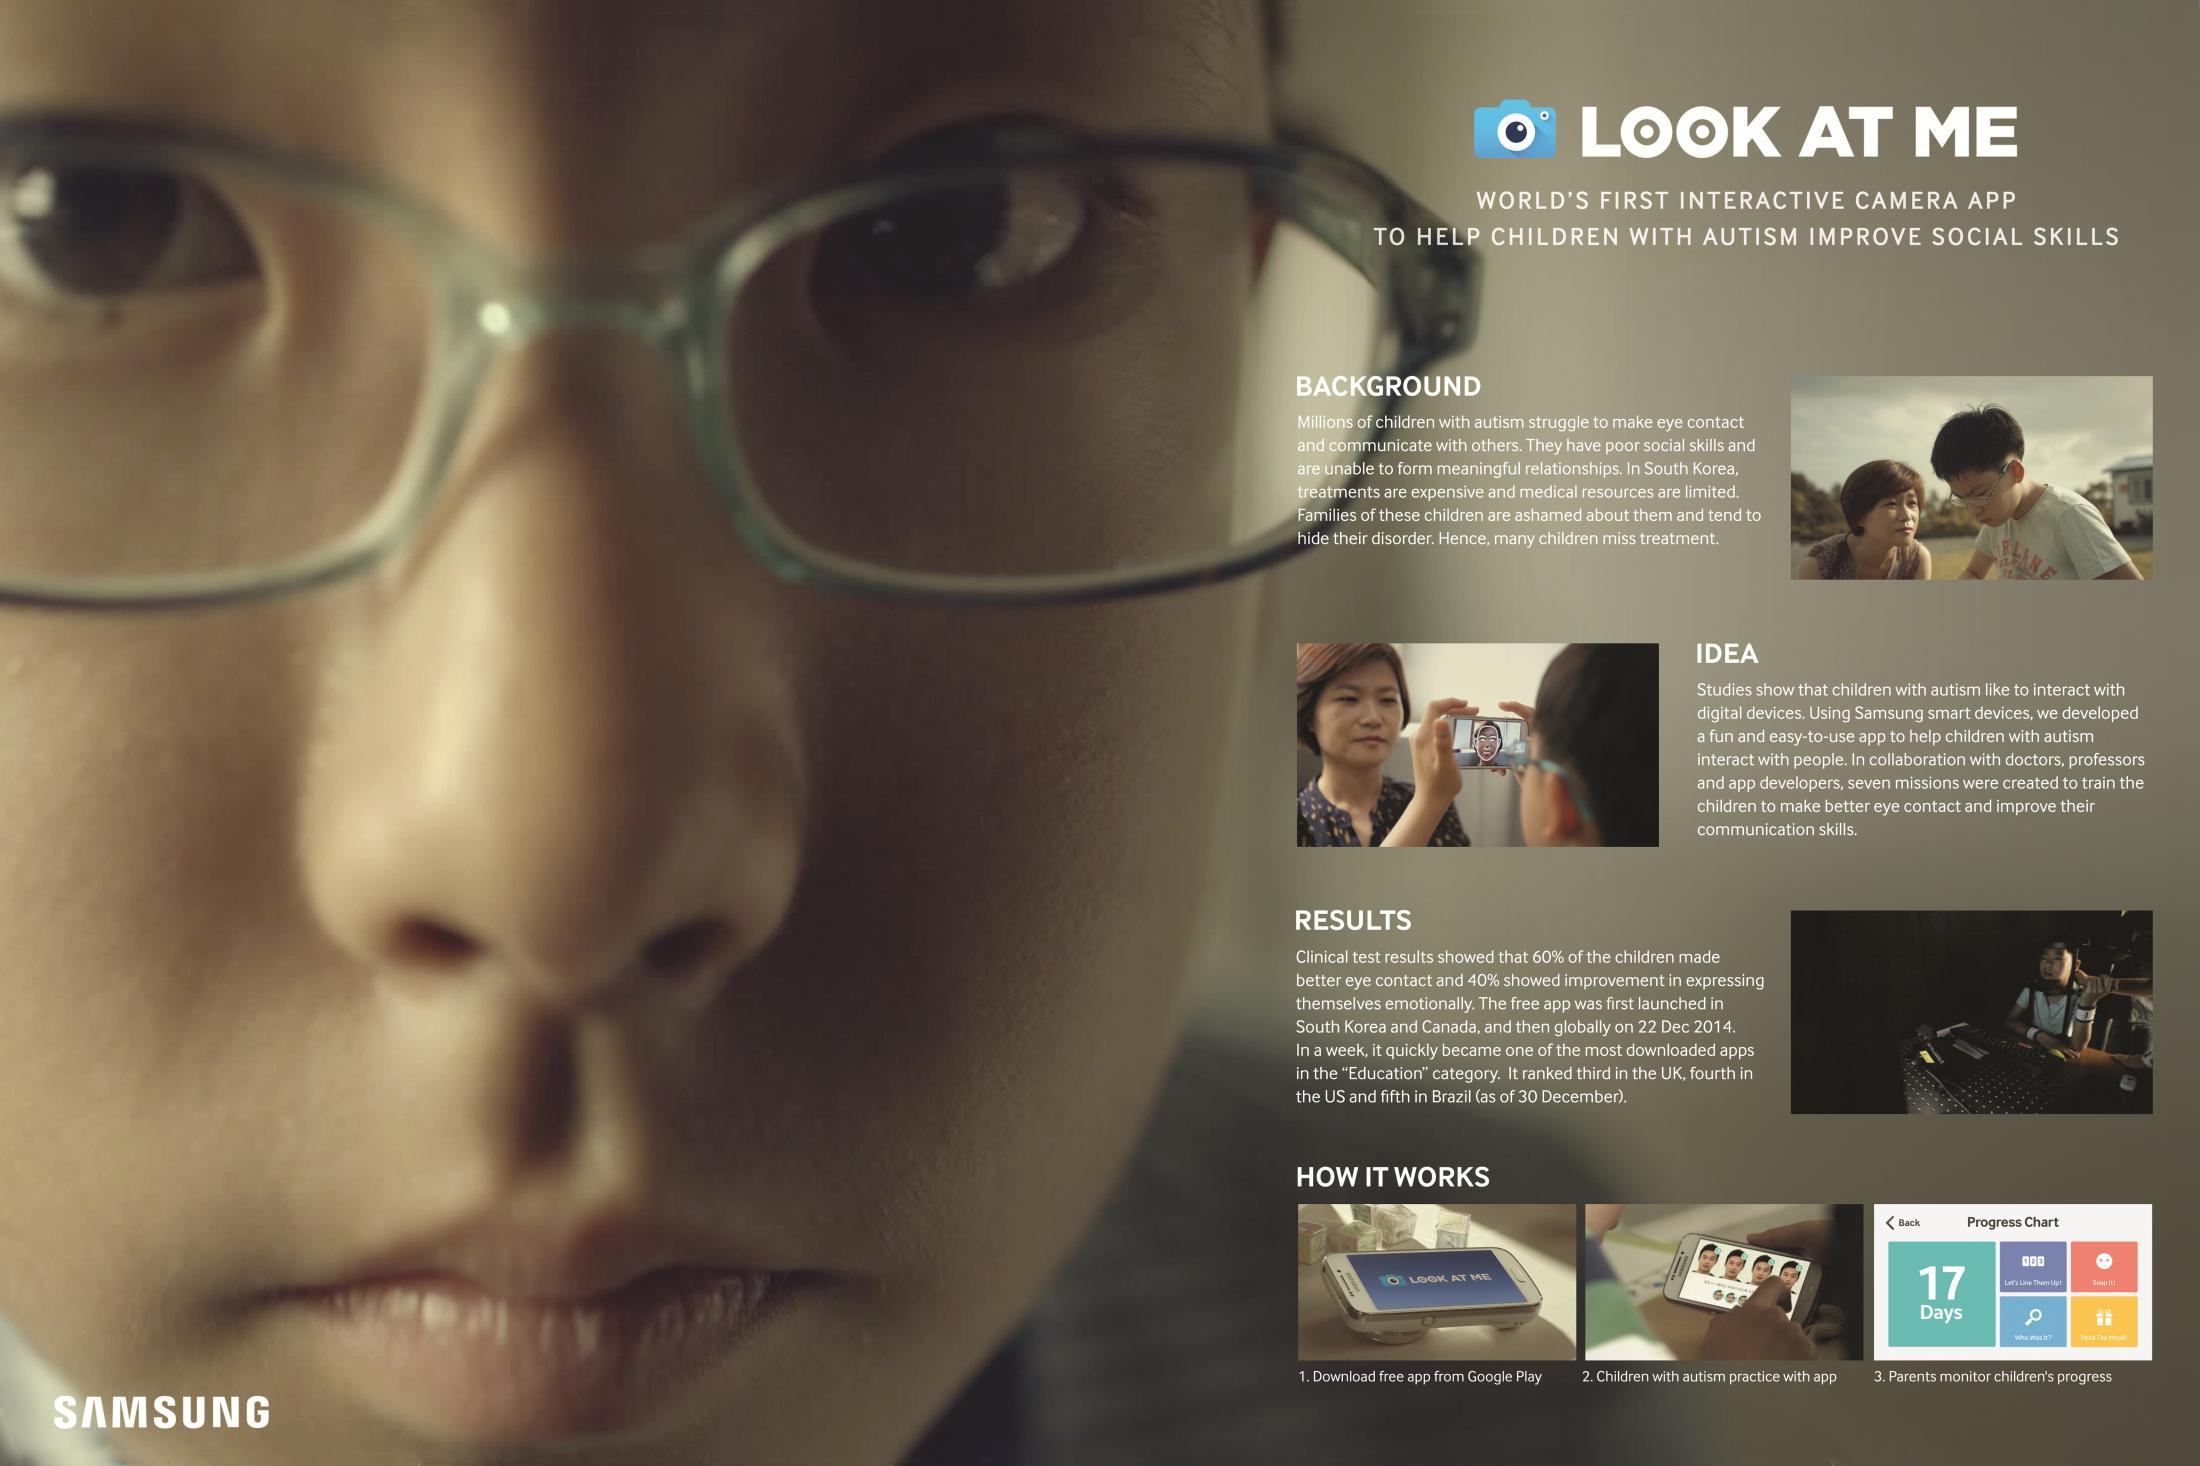 Thumbnail for Look at Me